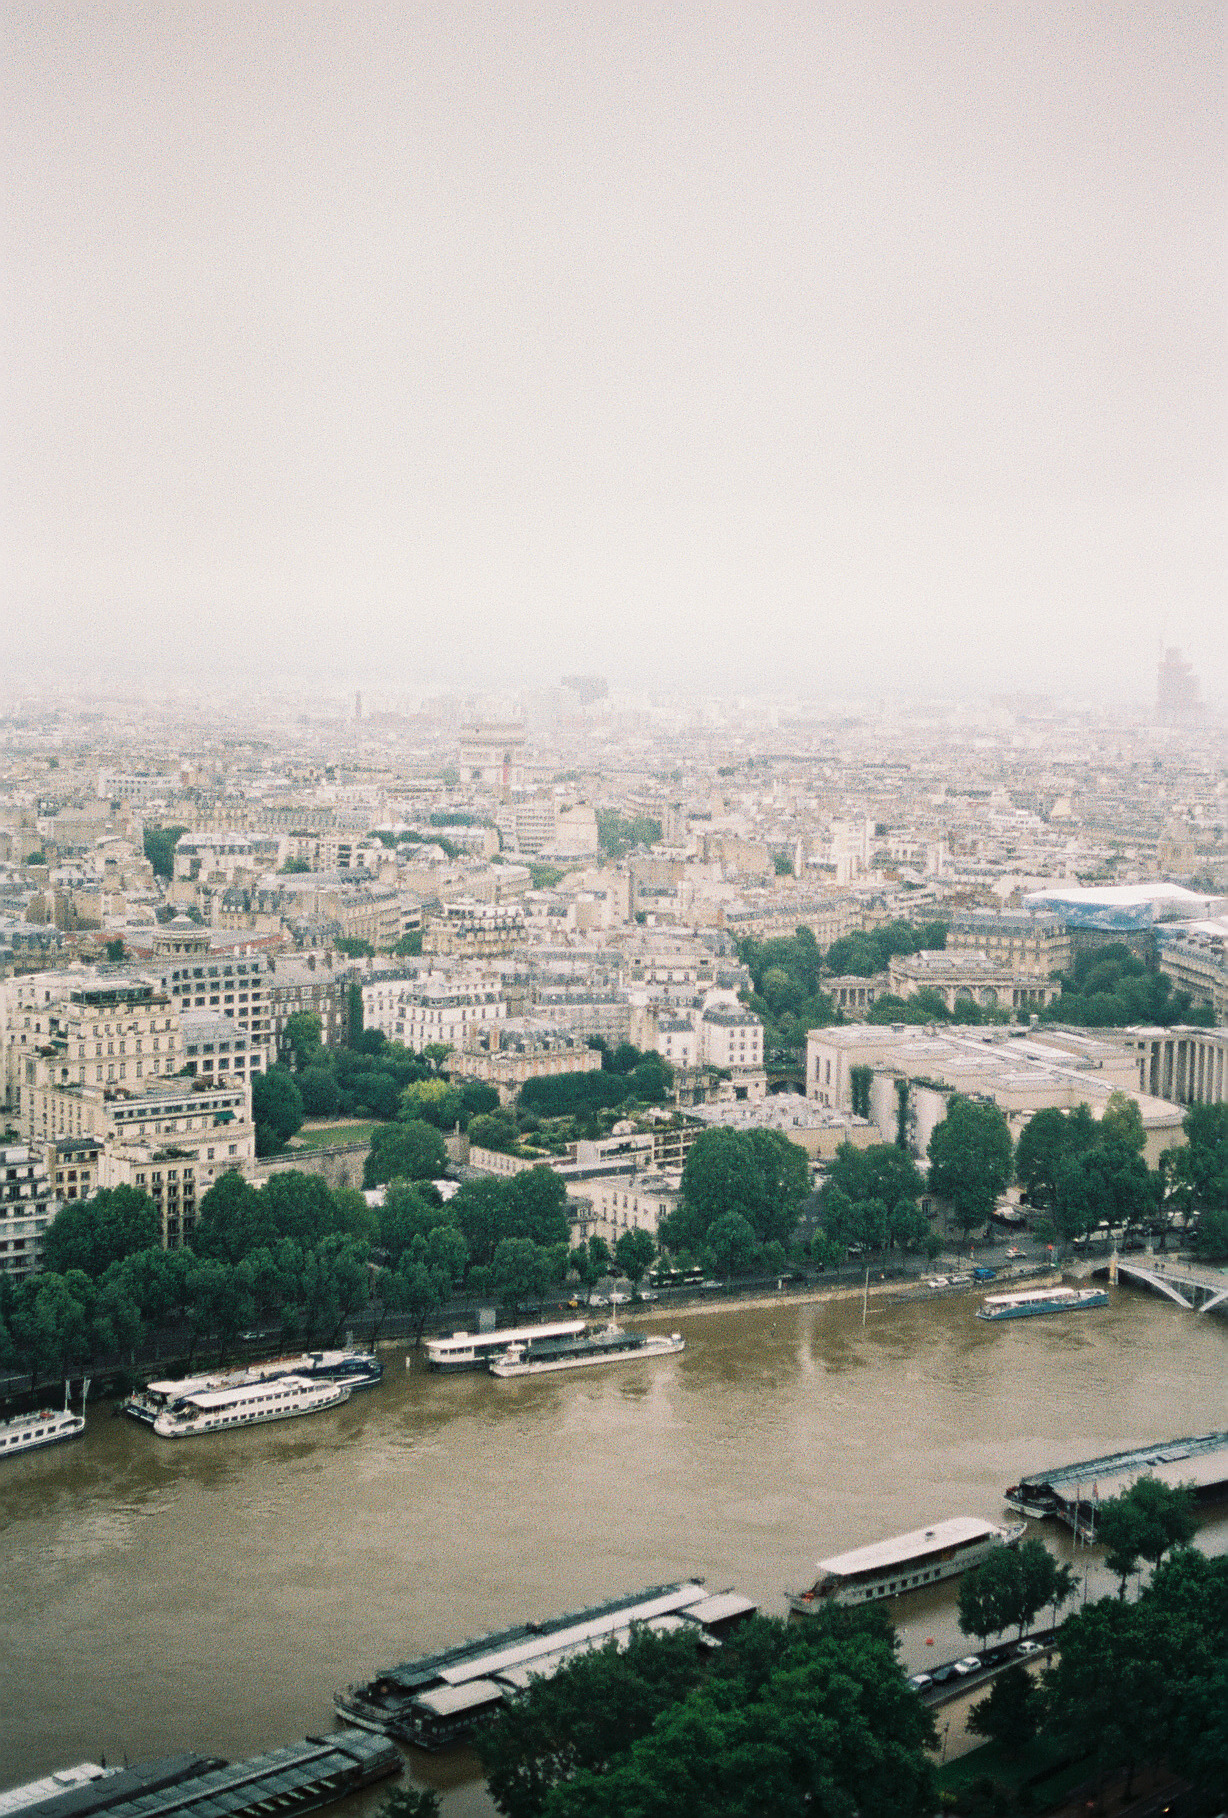 seine-river-flood-view-from-eiffel-tower-paris-france-european-honeymoon